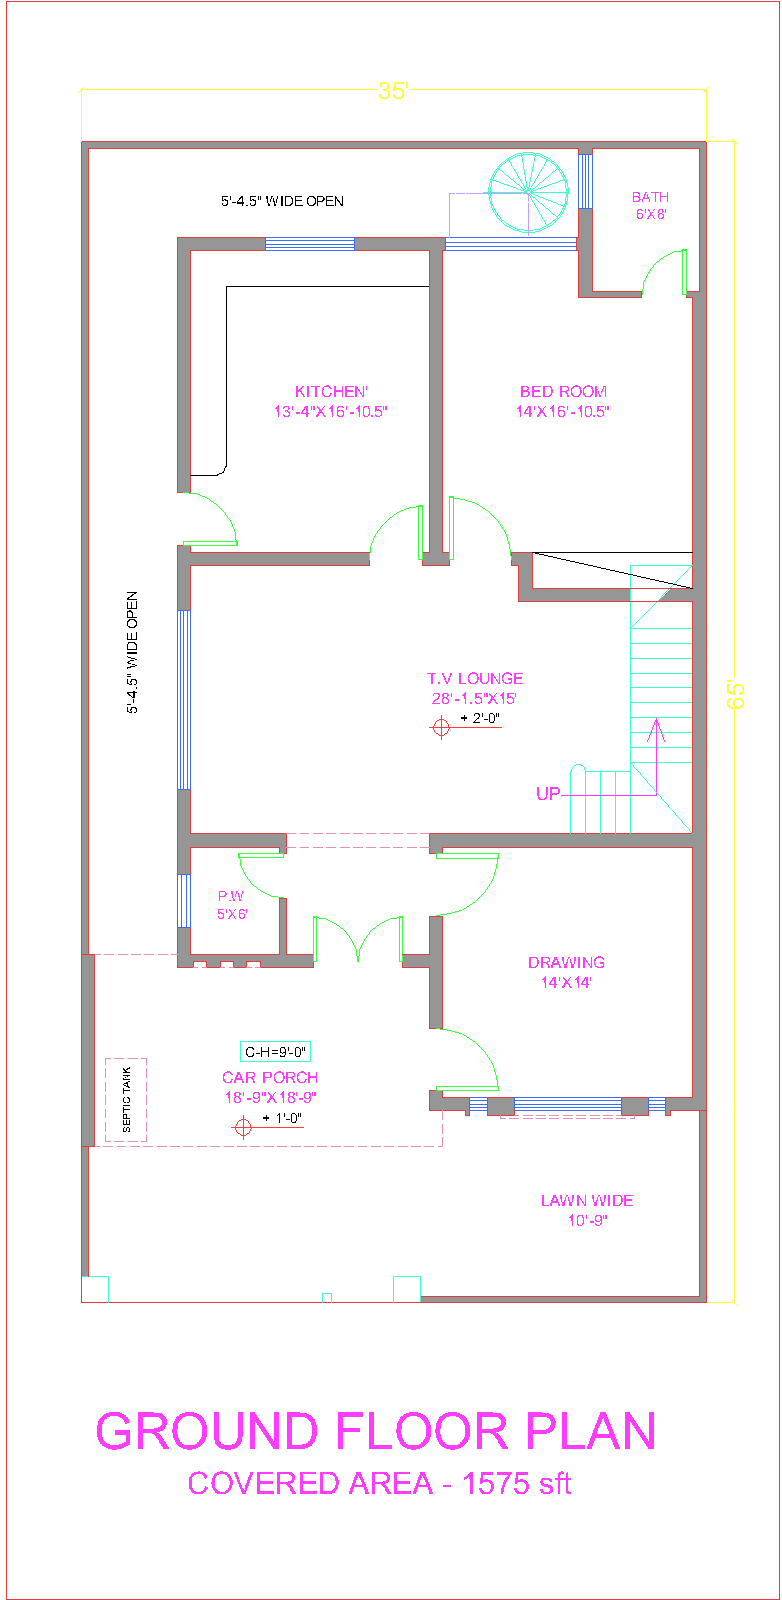 3D Front Elevation.com: 10 marla house plan layout House Plan Design ...